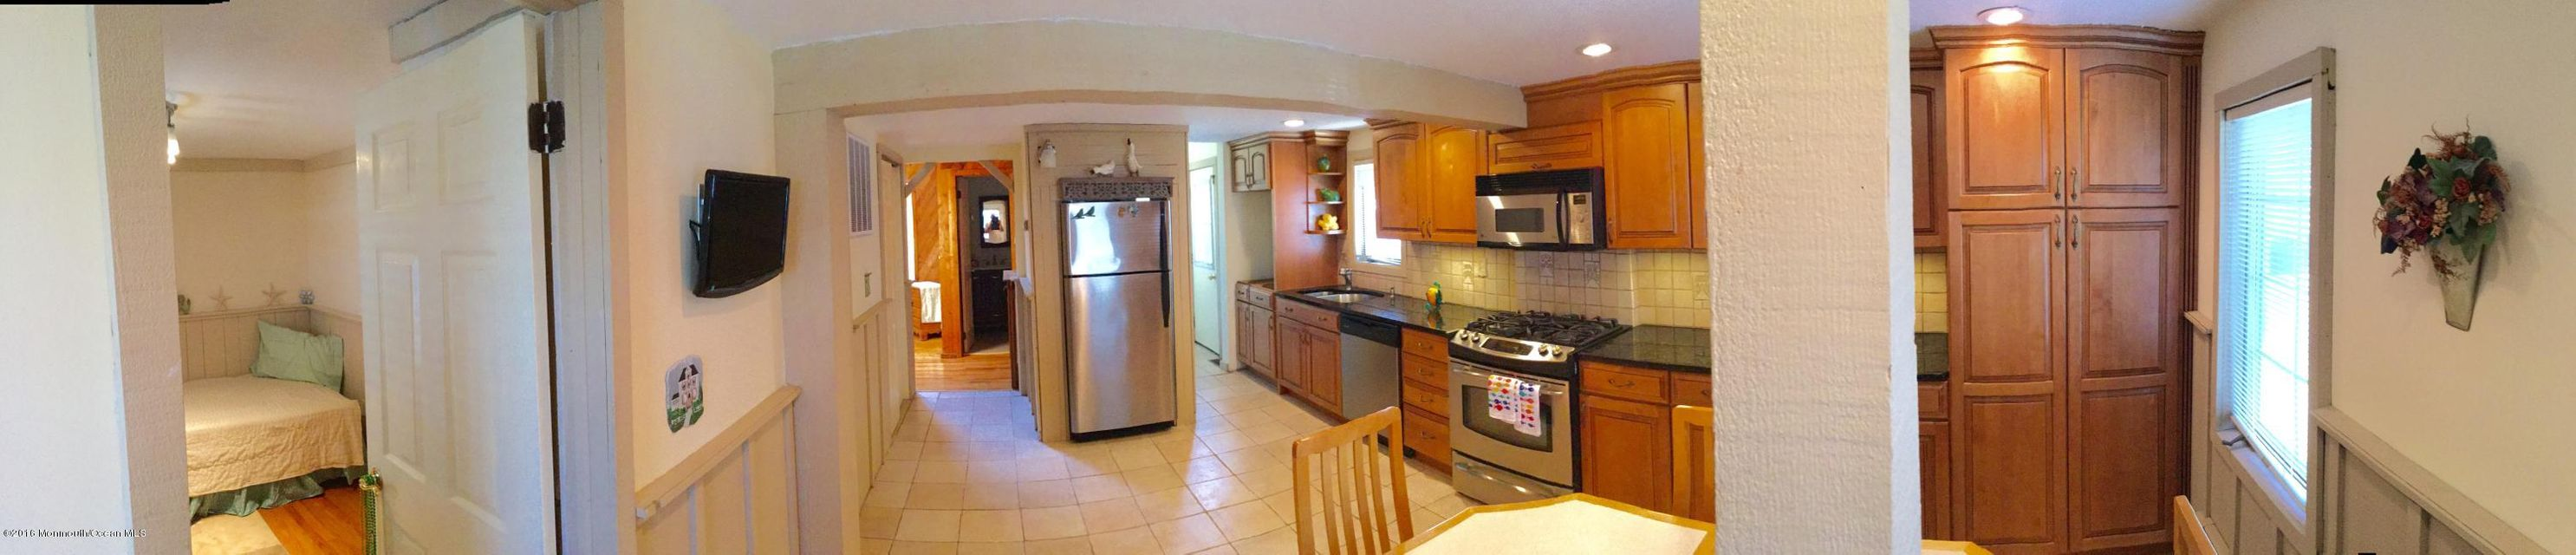 Additional photo for property listing at 704 Central Avenue  Seaside Park, New Jersey 08752 United States